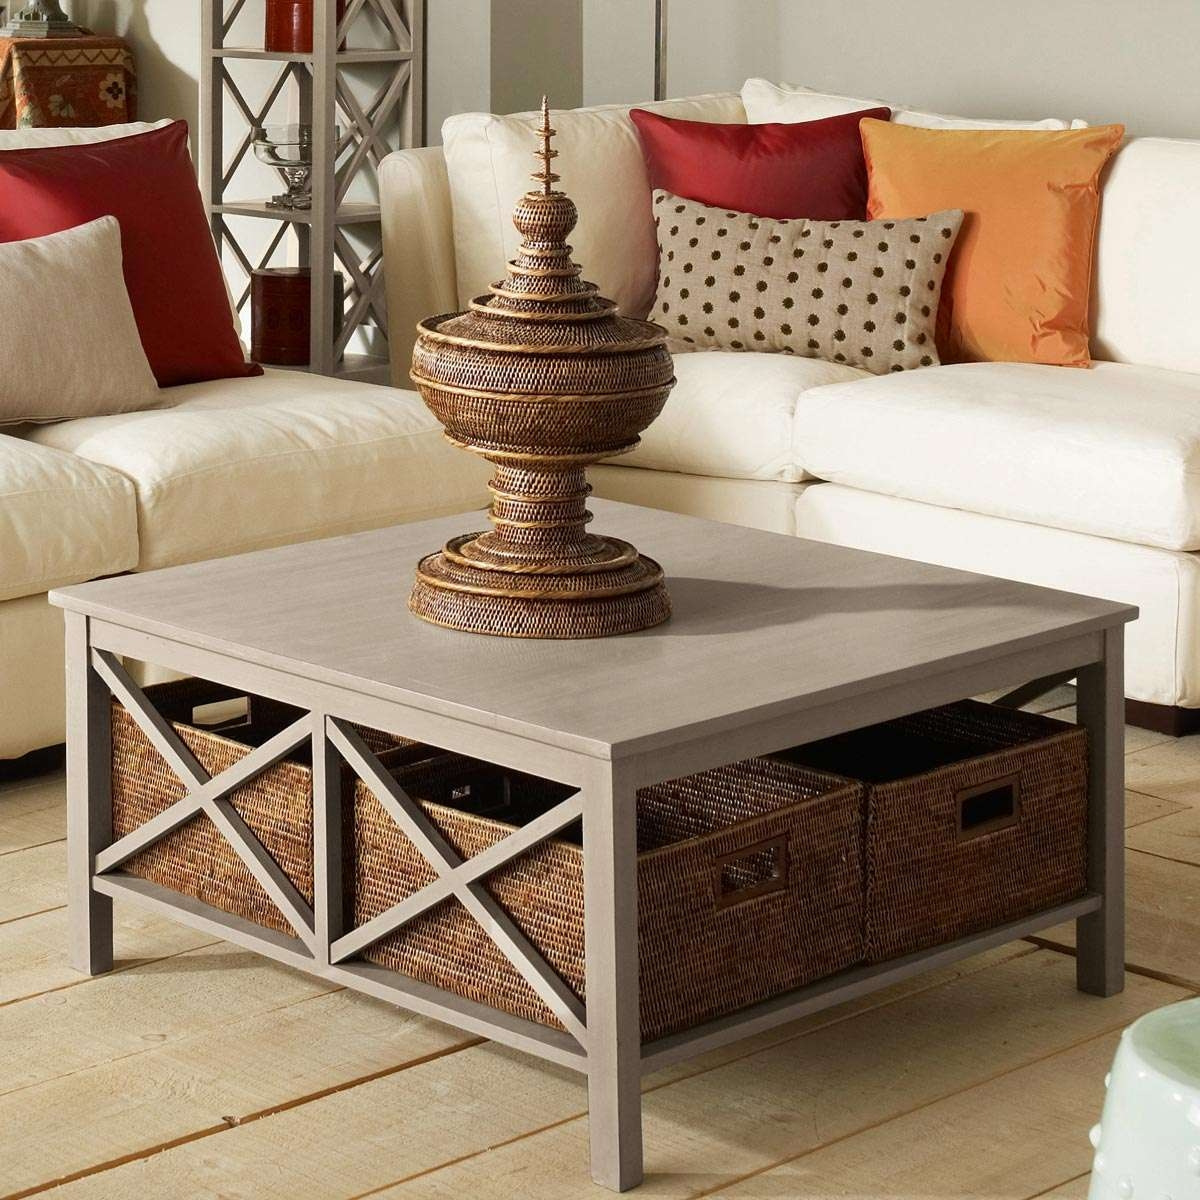 Coffee Table With Baskets – Writehookstudio Regarding Most Recent White Coffee Tables With Baskets (View 7 of 20)